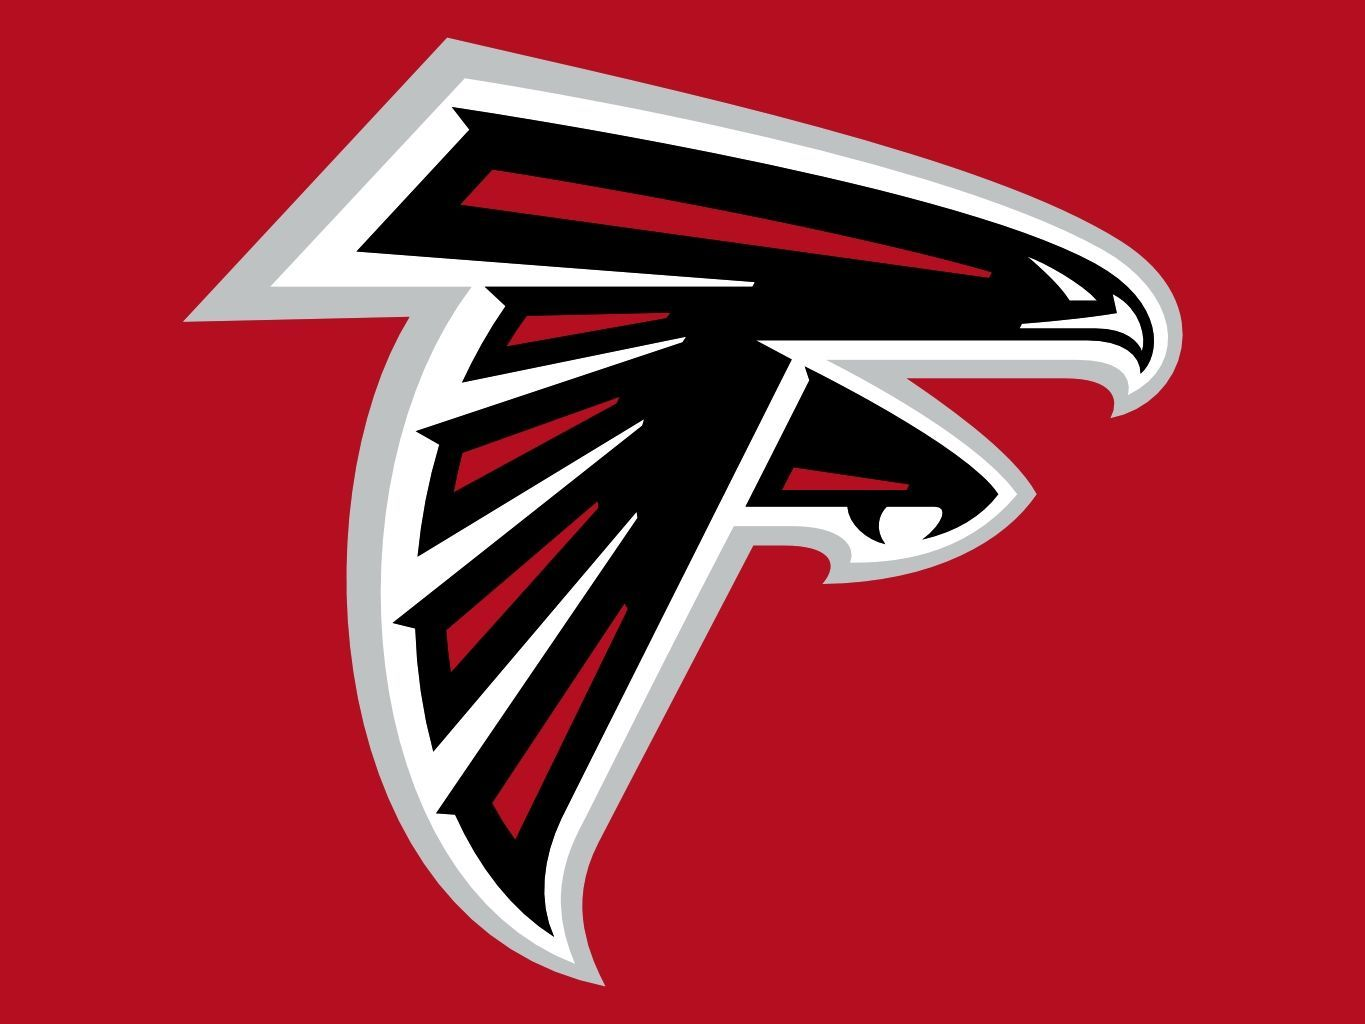 Nfldraftgrades In 2020 Atlanta Falcons Football Nfl Teams Logos Atlanta Falcons Logo